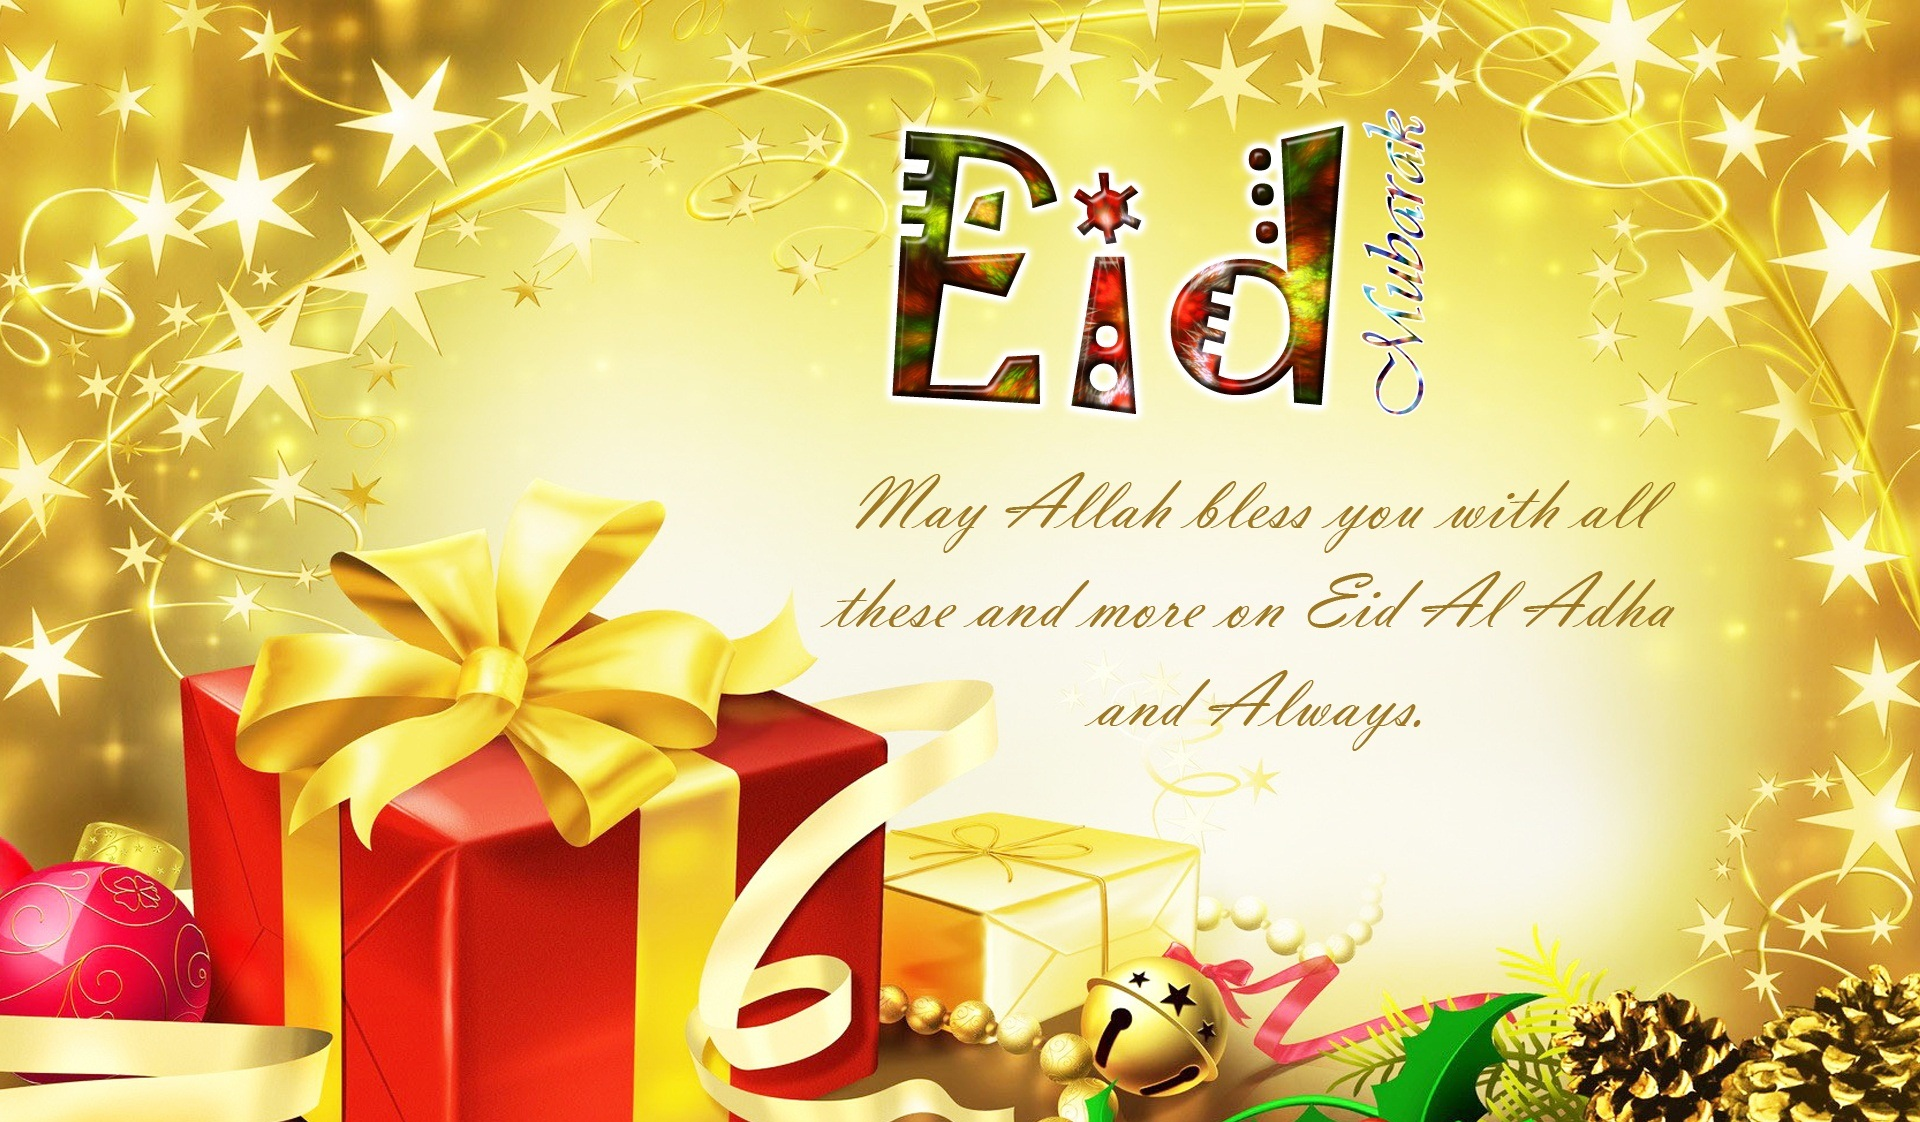 Eid Mubarak With Allah Mobile Hd Desktop Free Background Wallpaper